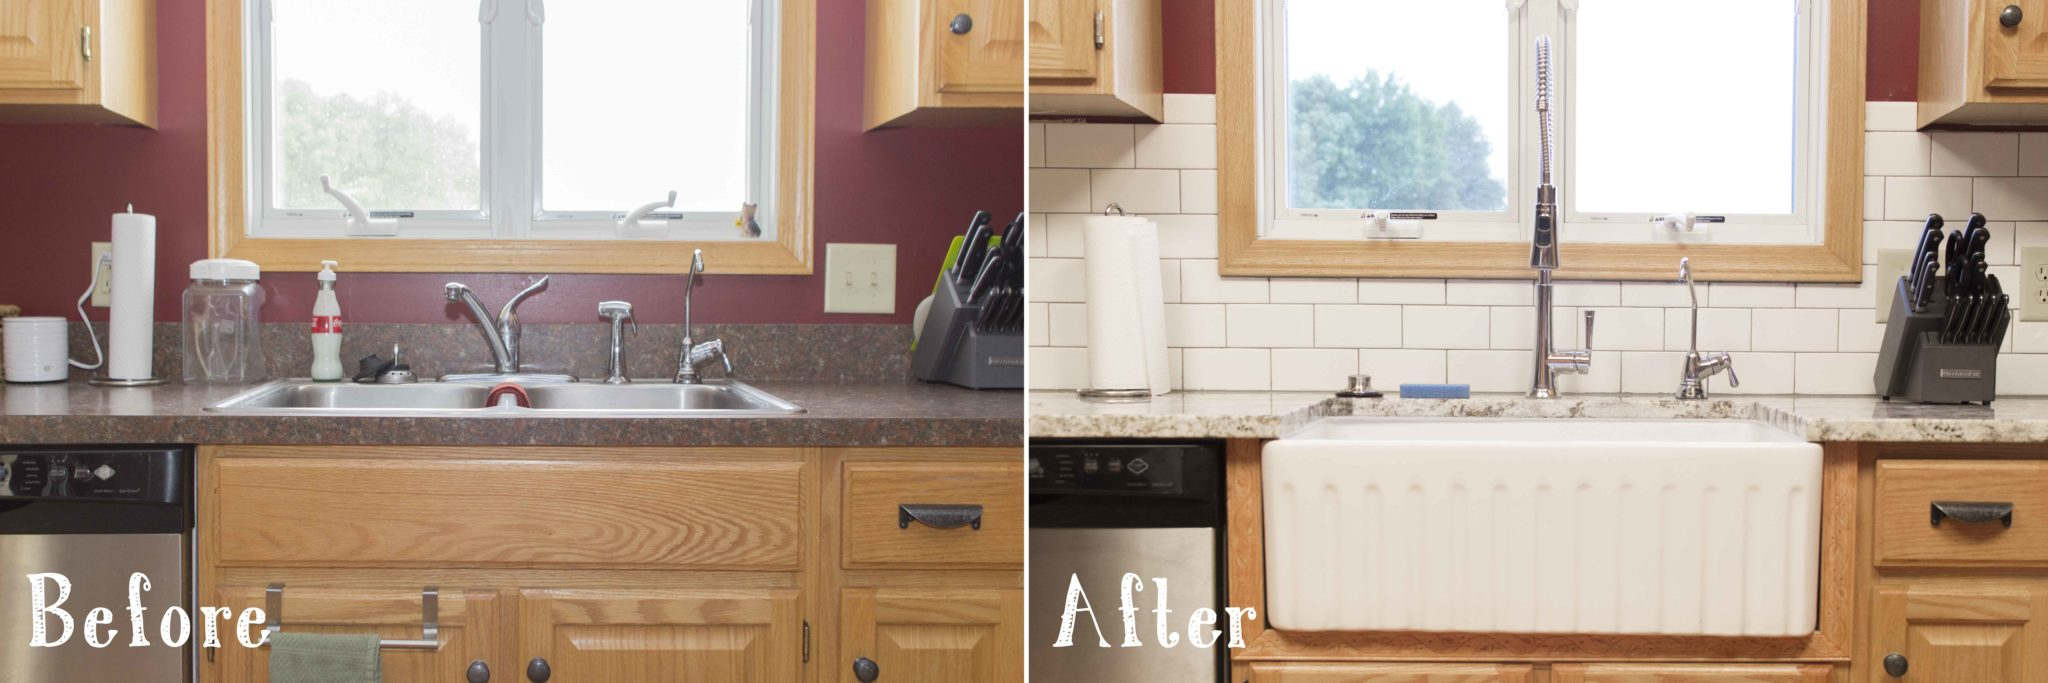 How To Install A Fireclay Farmhouse Kitchen Sink The Wheatley